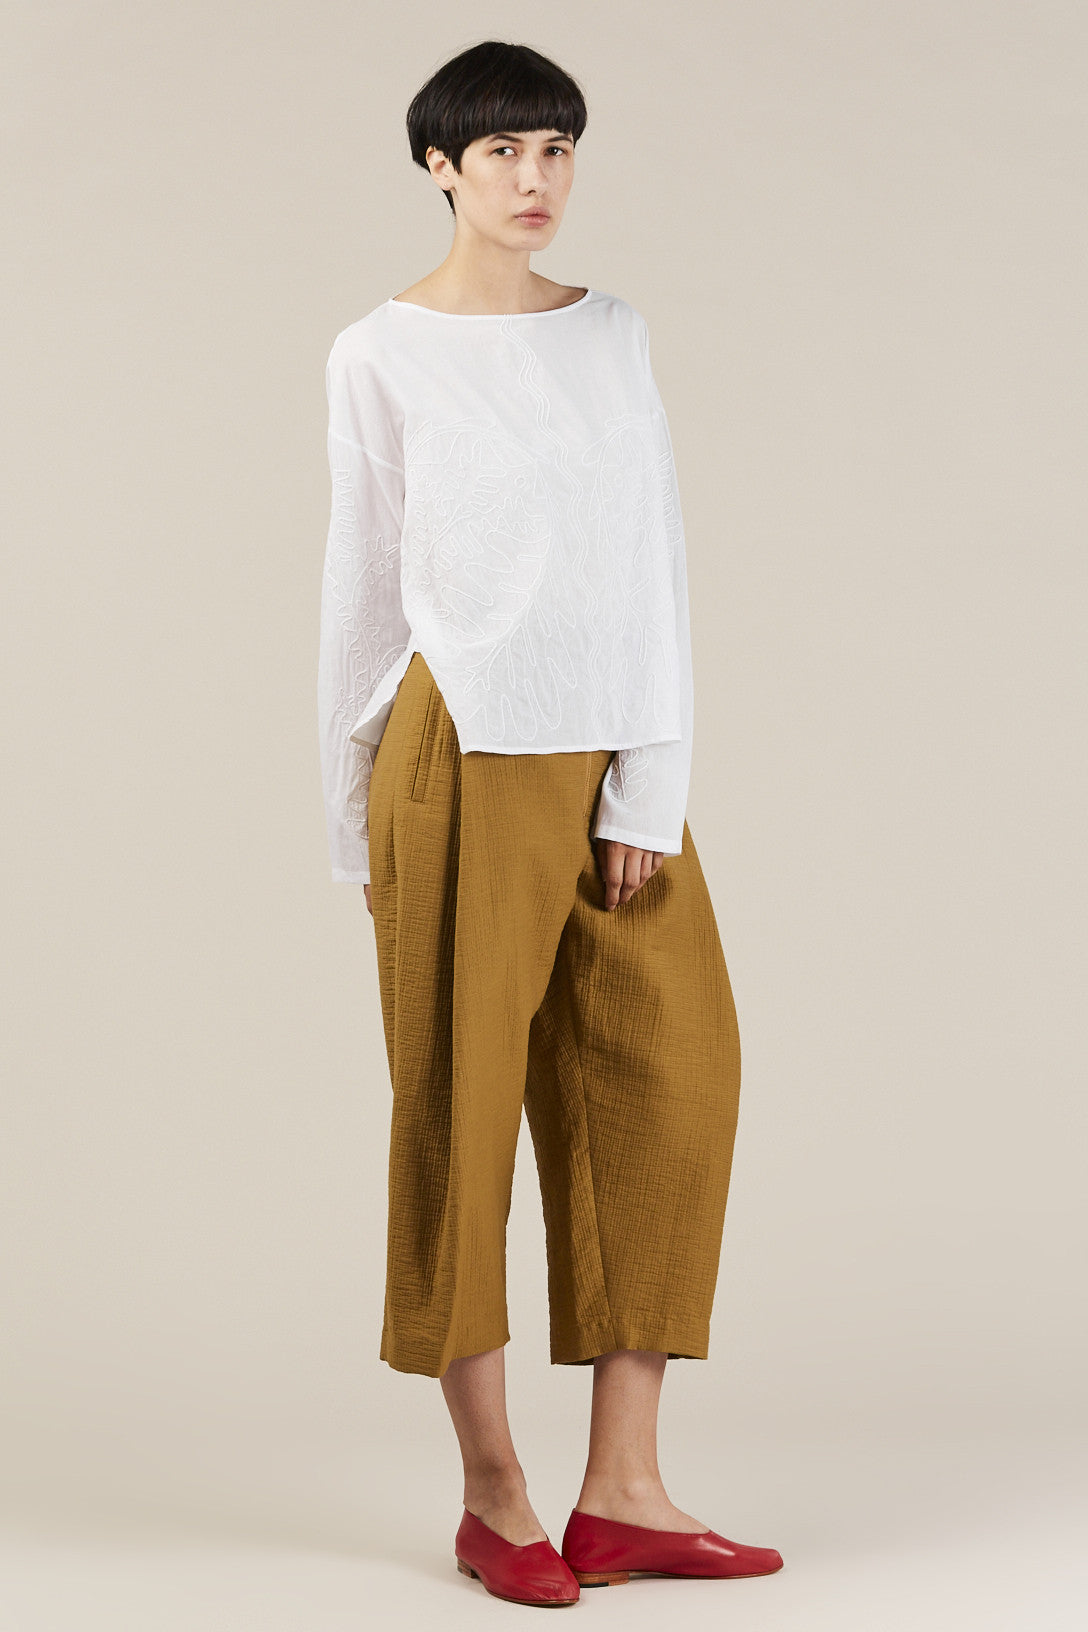 Rachel Comey - Embroidered Barter Top, White